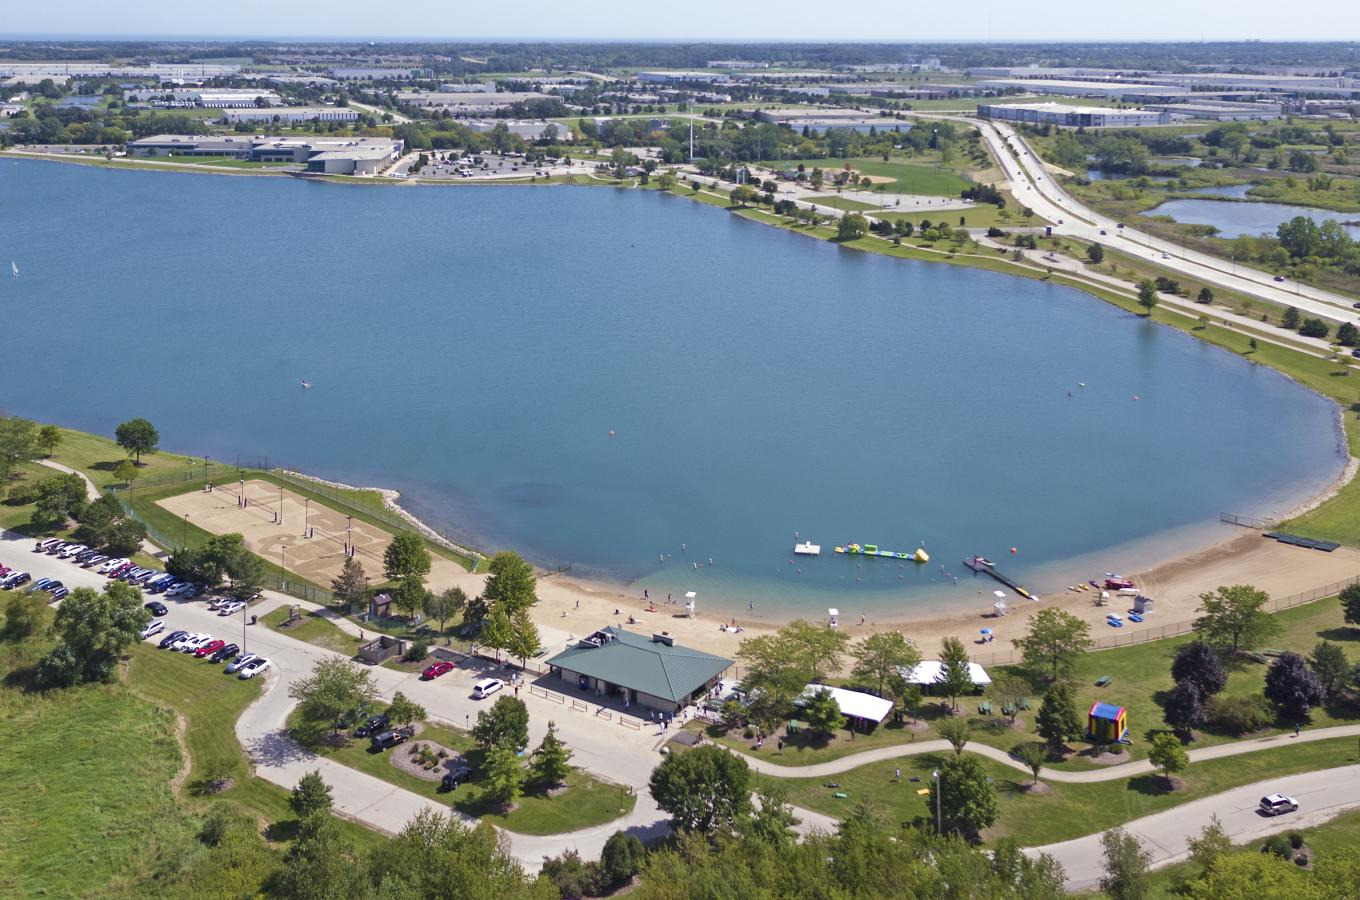 Drone pic of Lake Andrea from Beach